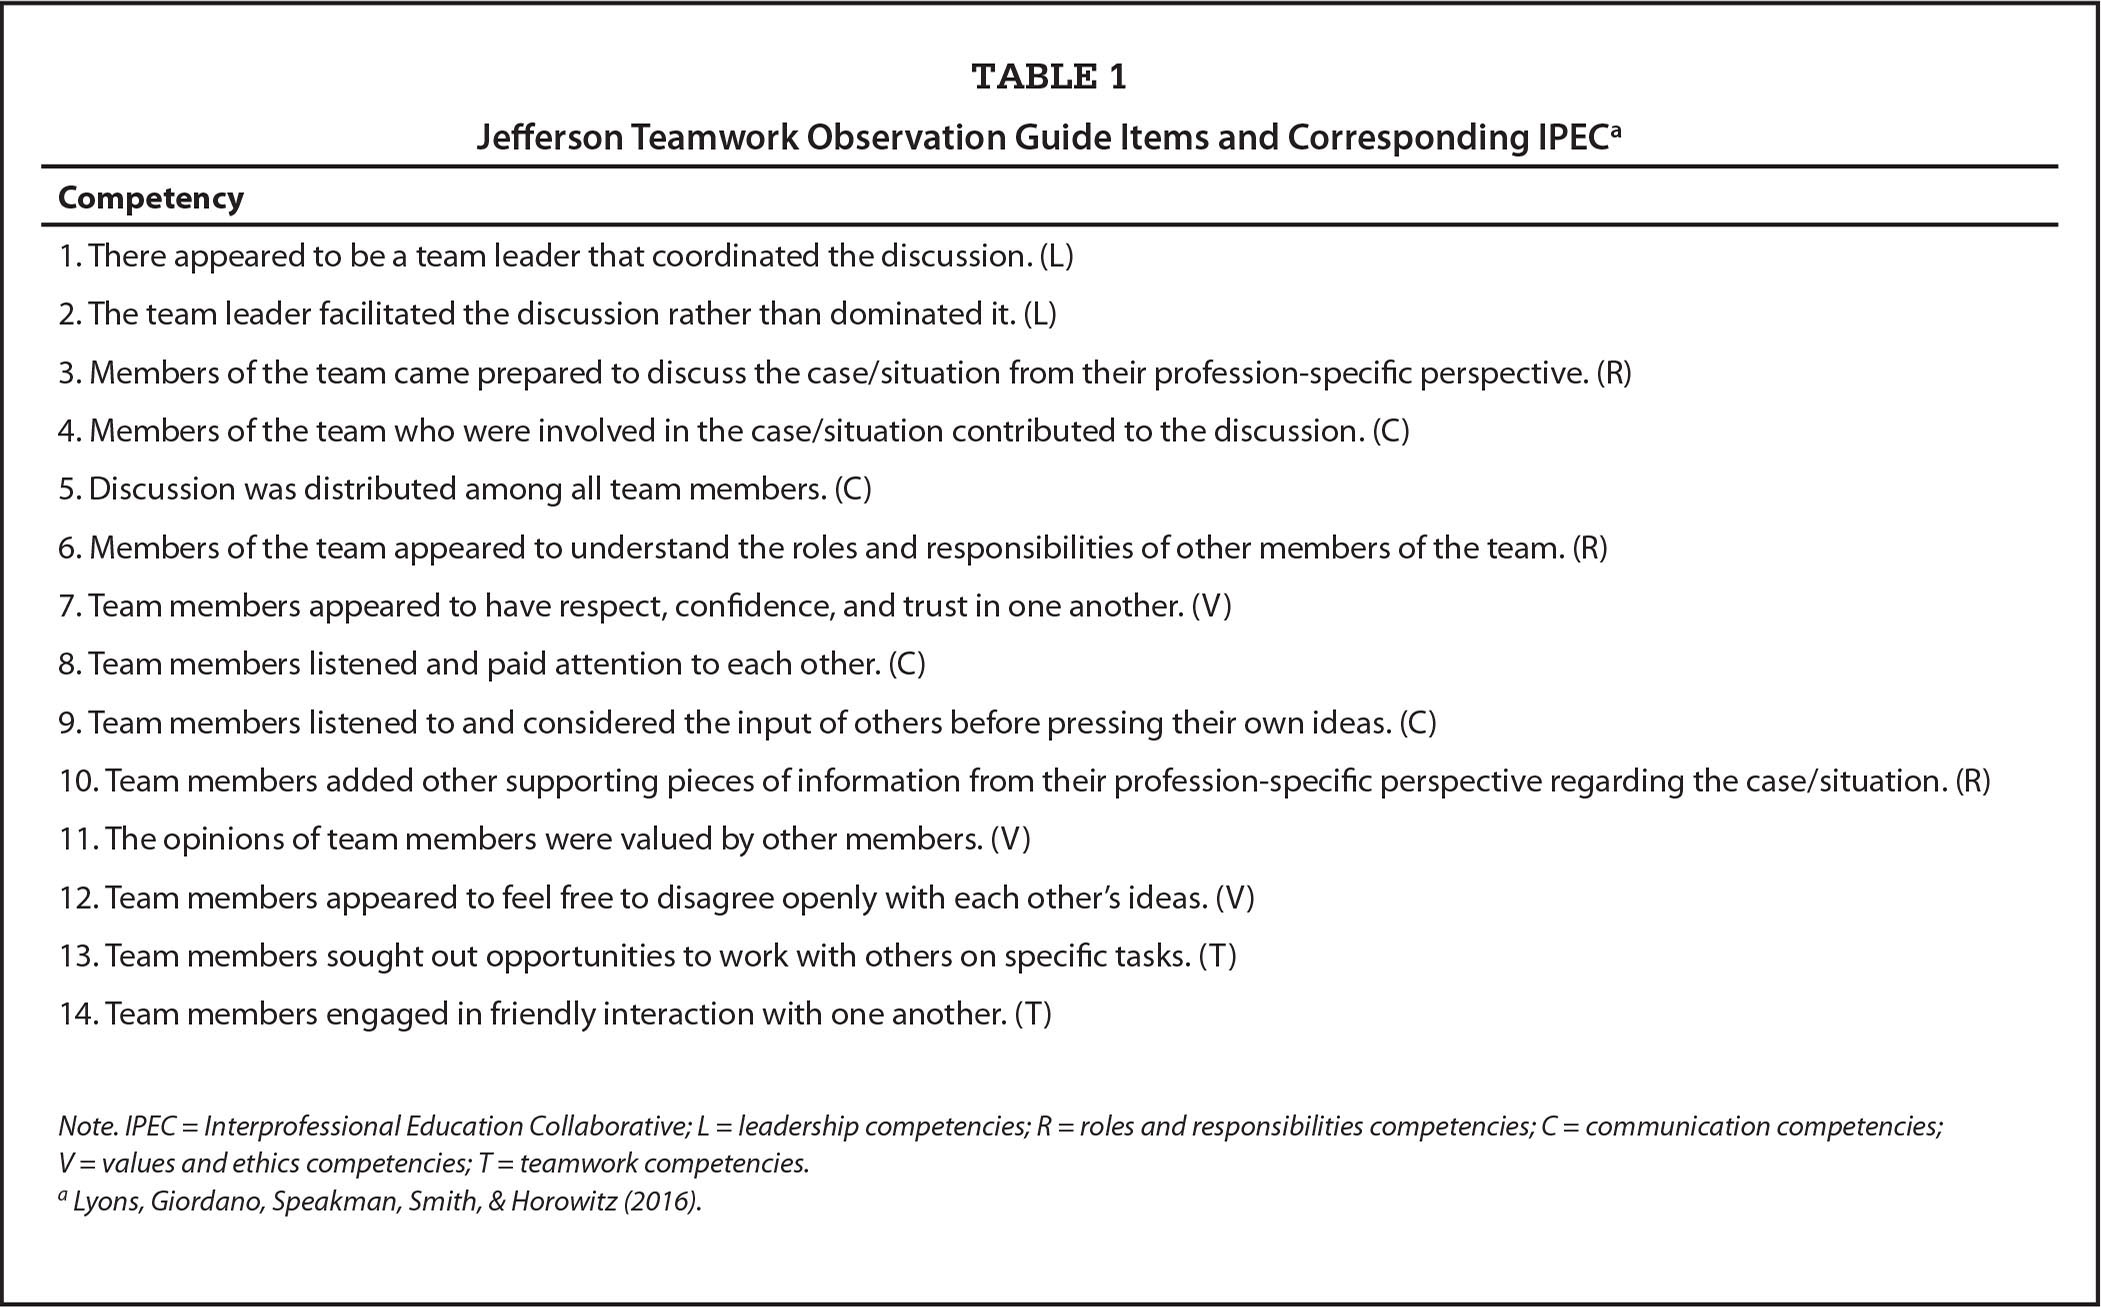 Evaluation Of An Asynchronous Online Interprofessional Clinical Experience For Dnp Students